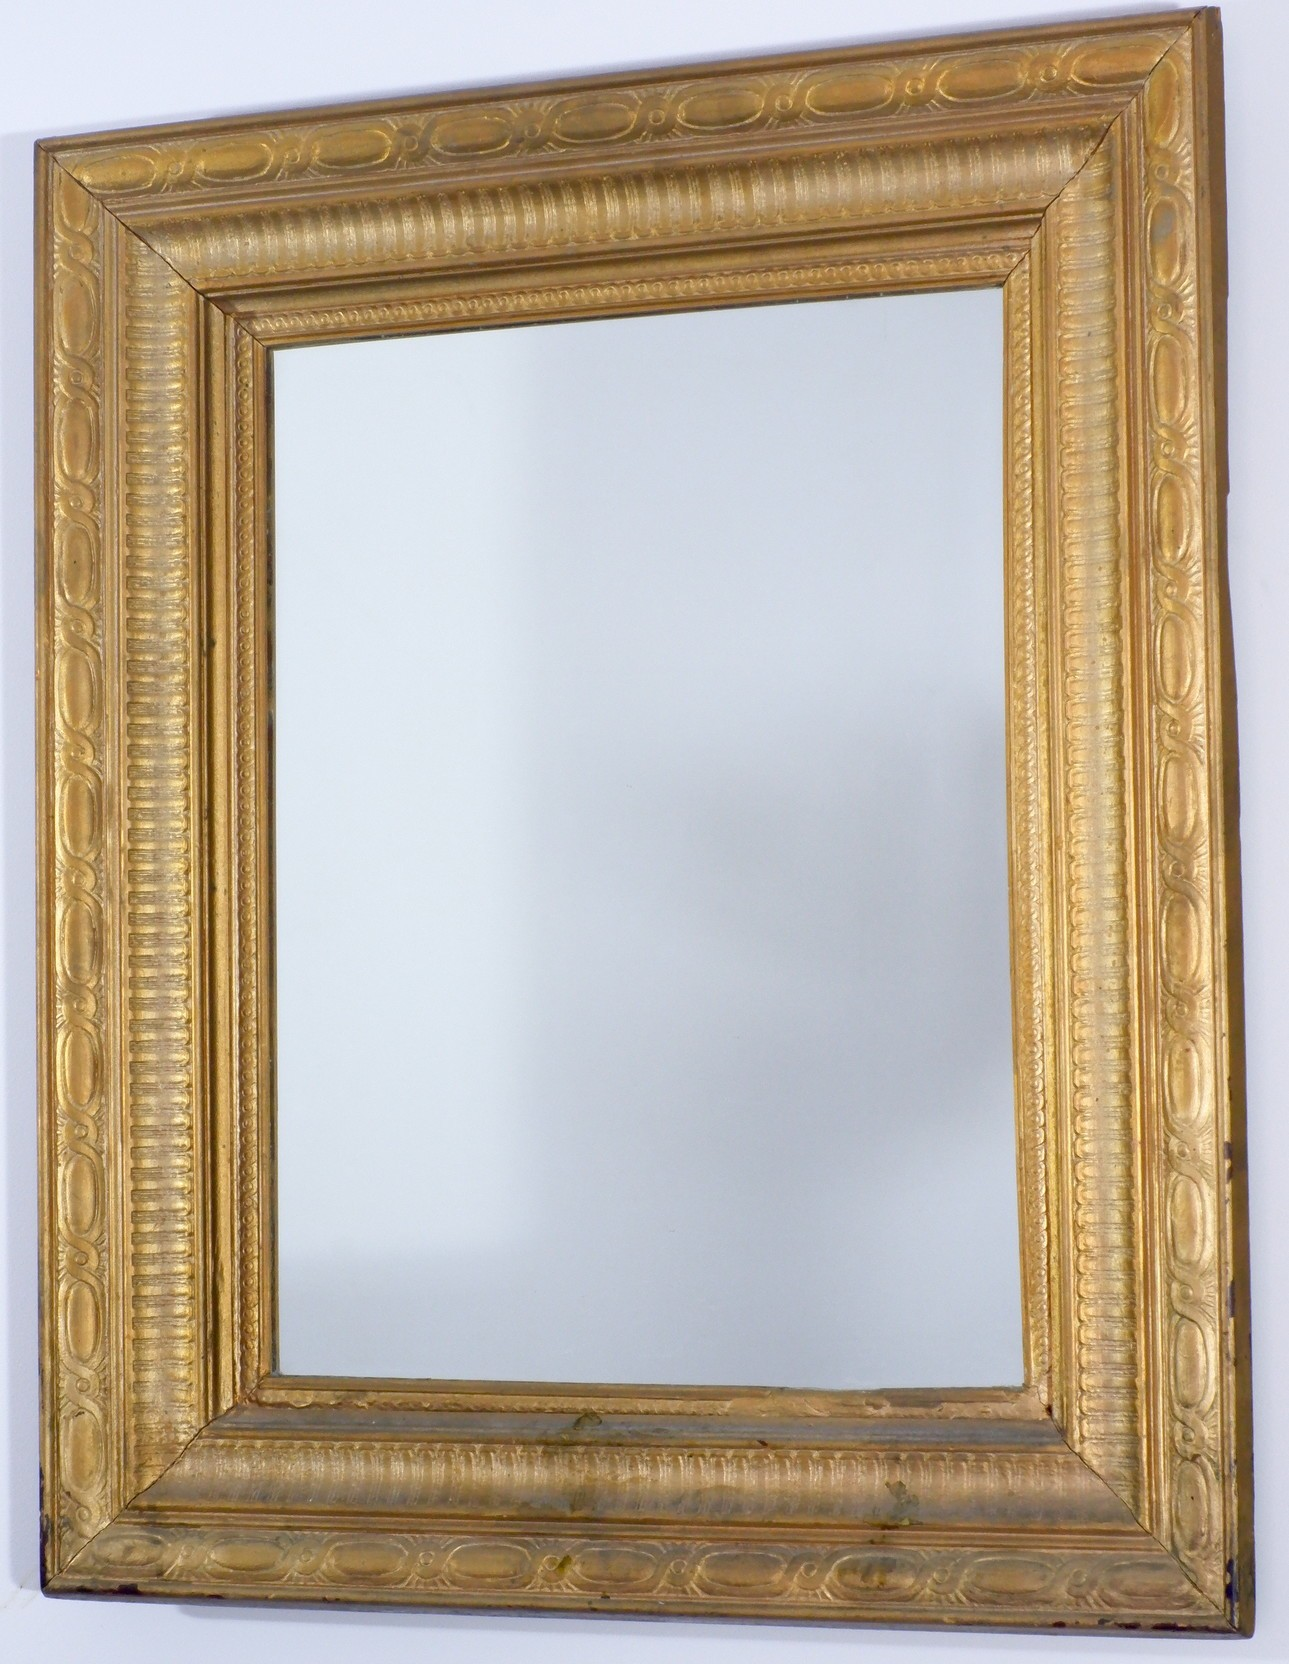 'Antique Gold Painted Press Moulded Wood Mirror'